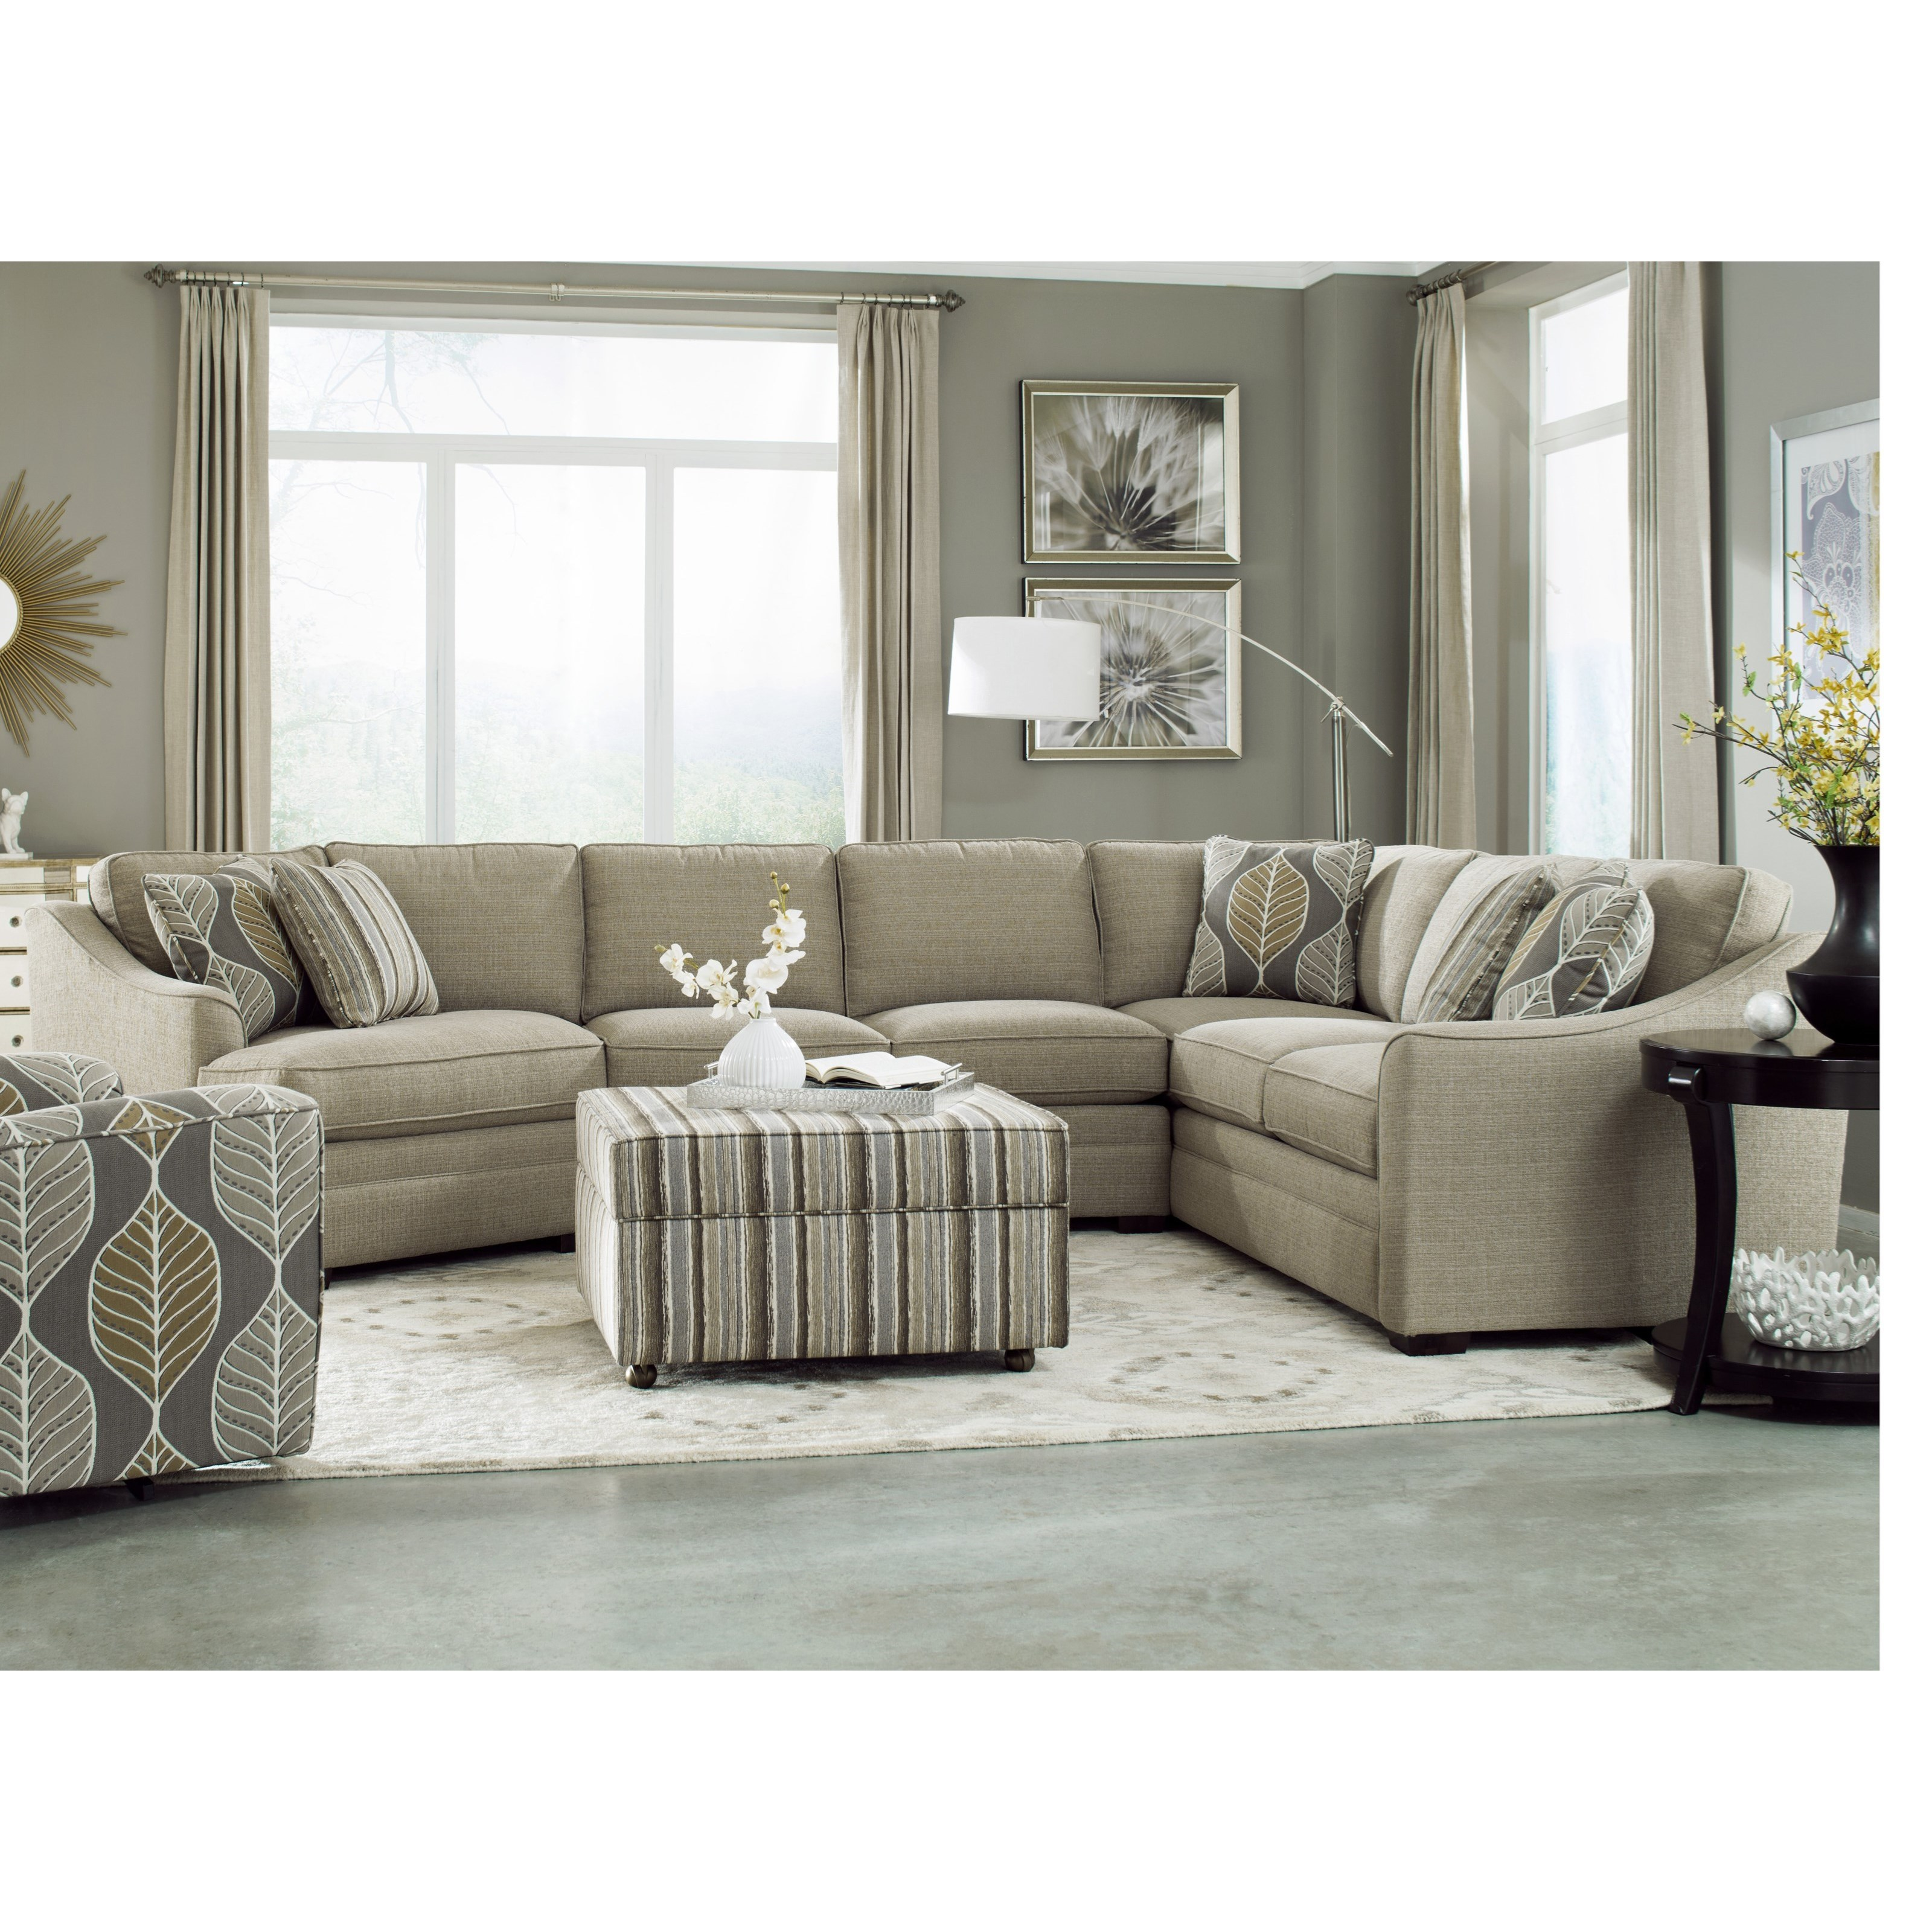 separately shipping free america sectional overstock leather furniture gel modular contemporary pieces of sold today ottoman draven garden with product grey home piece